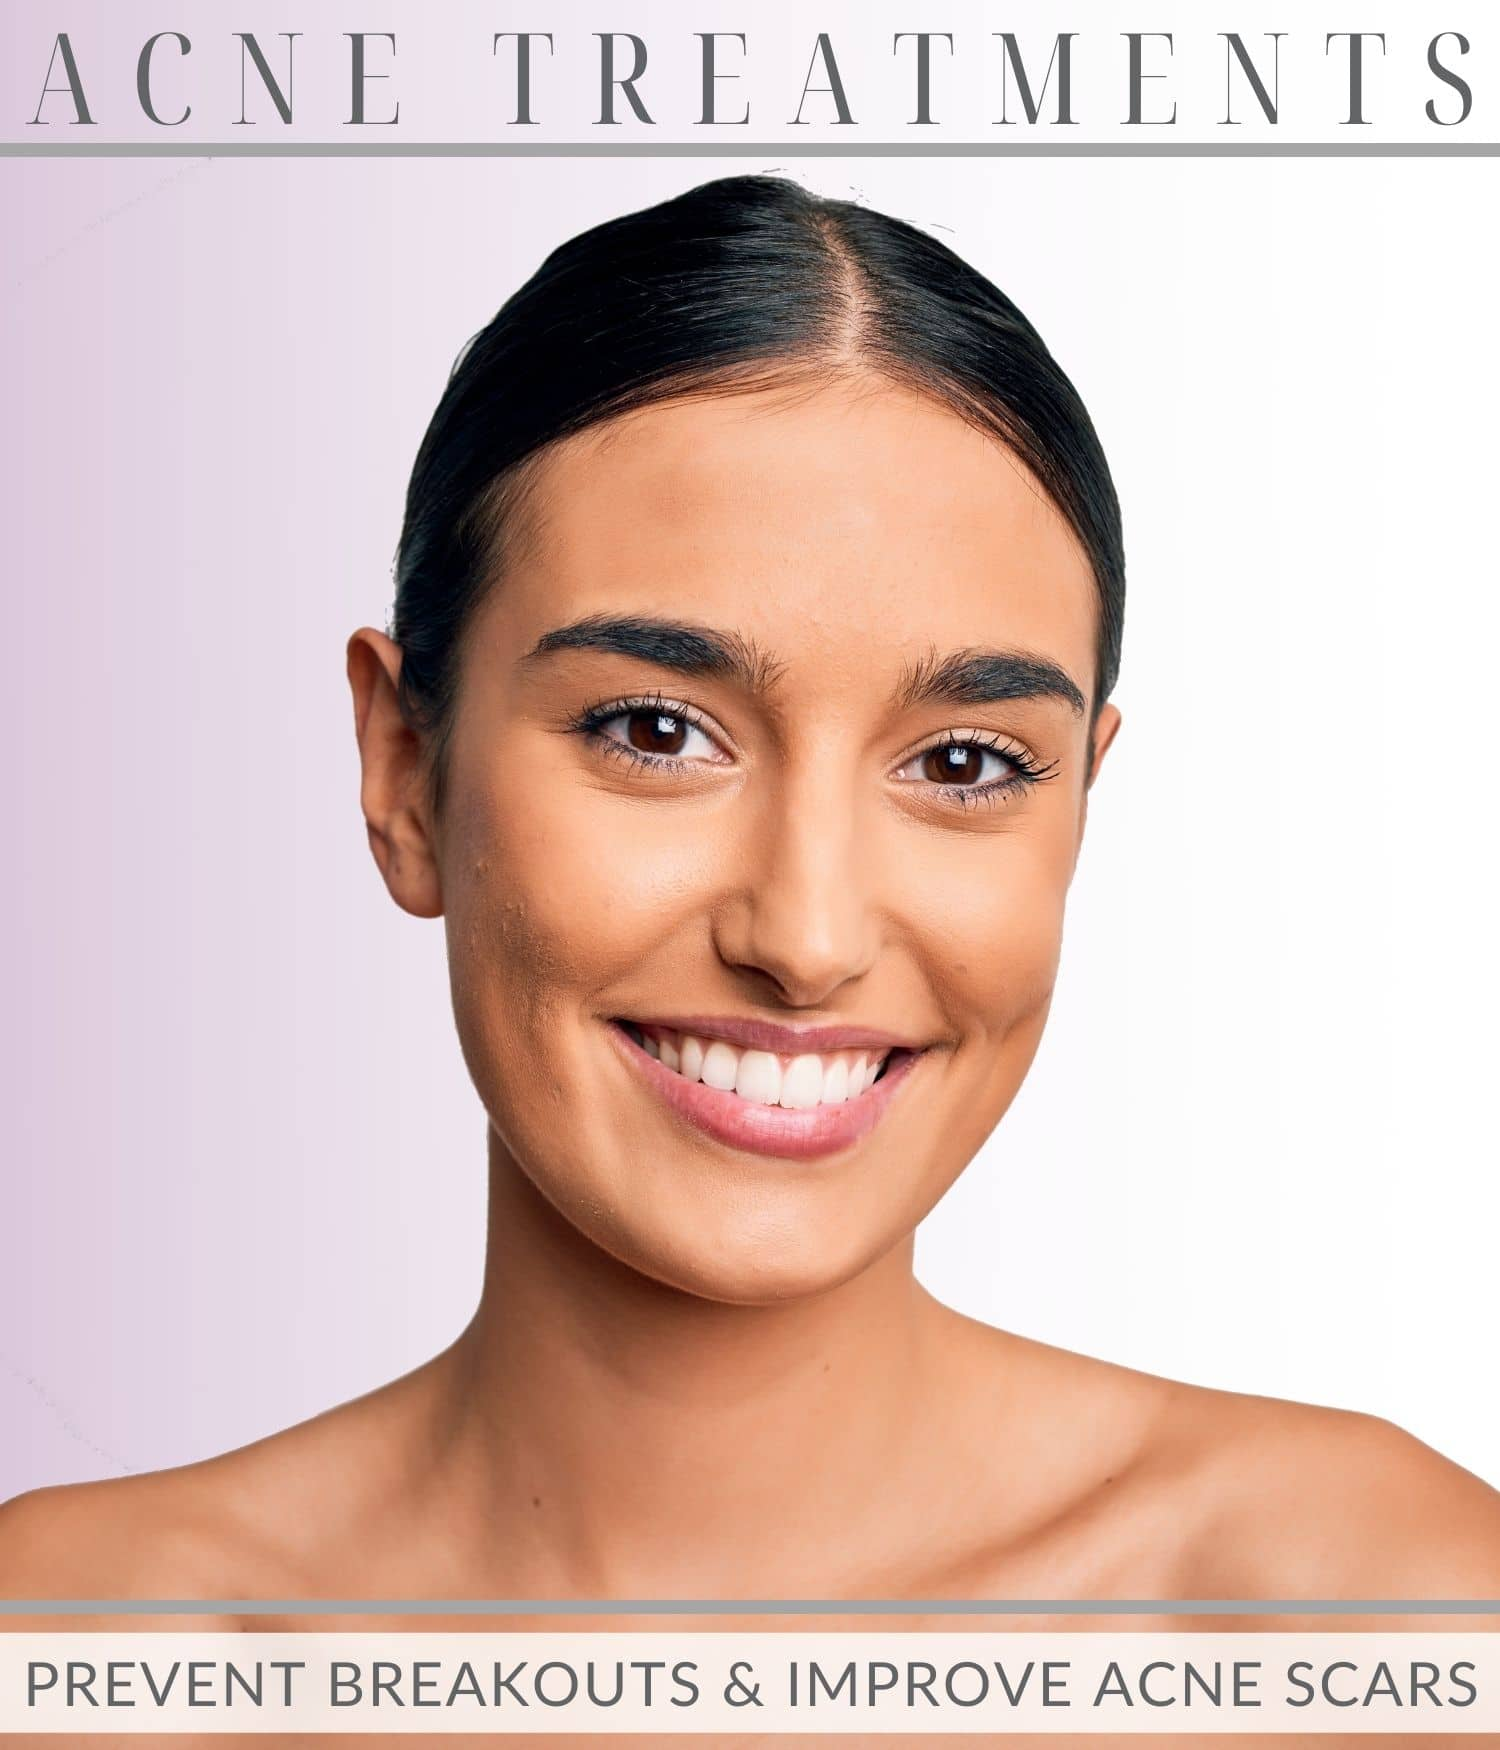 beautiful young woman from acne treatments